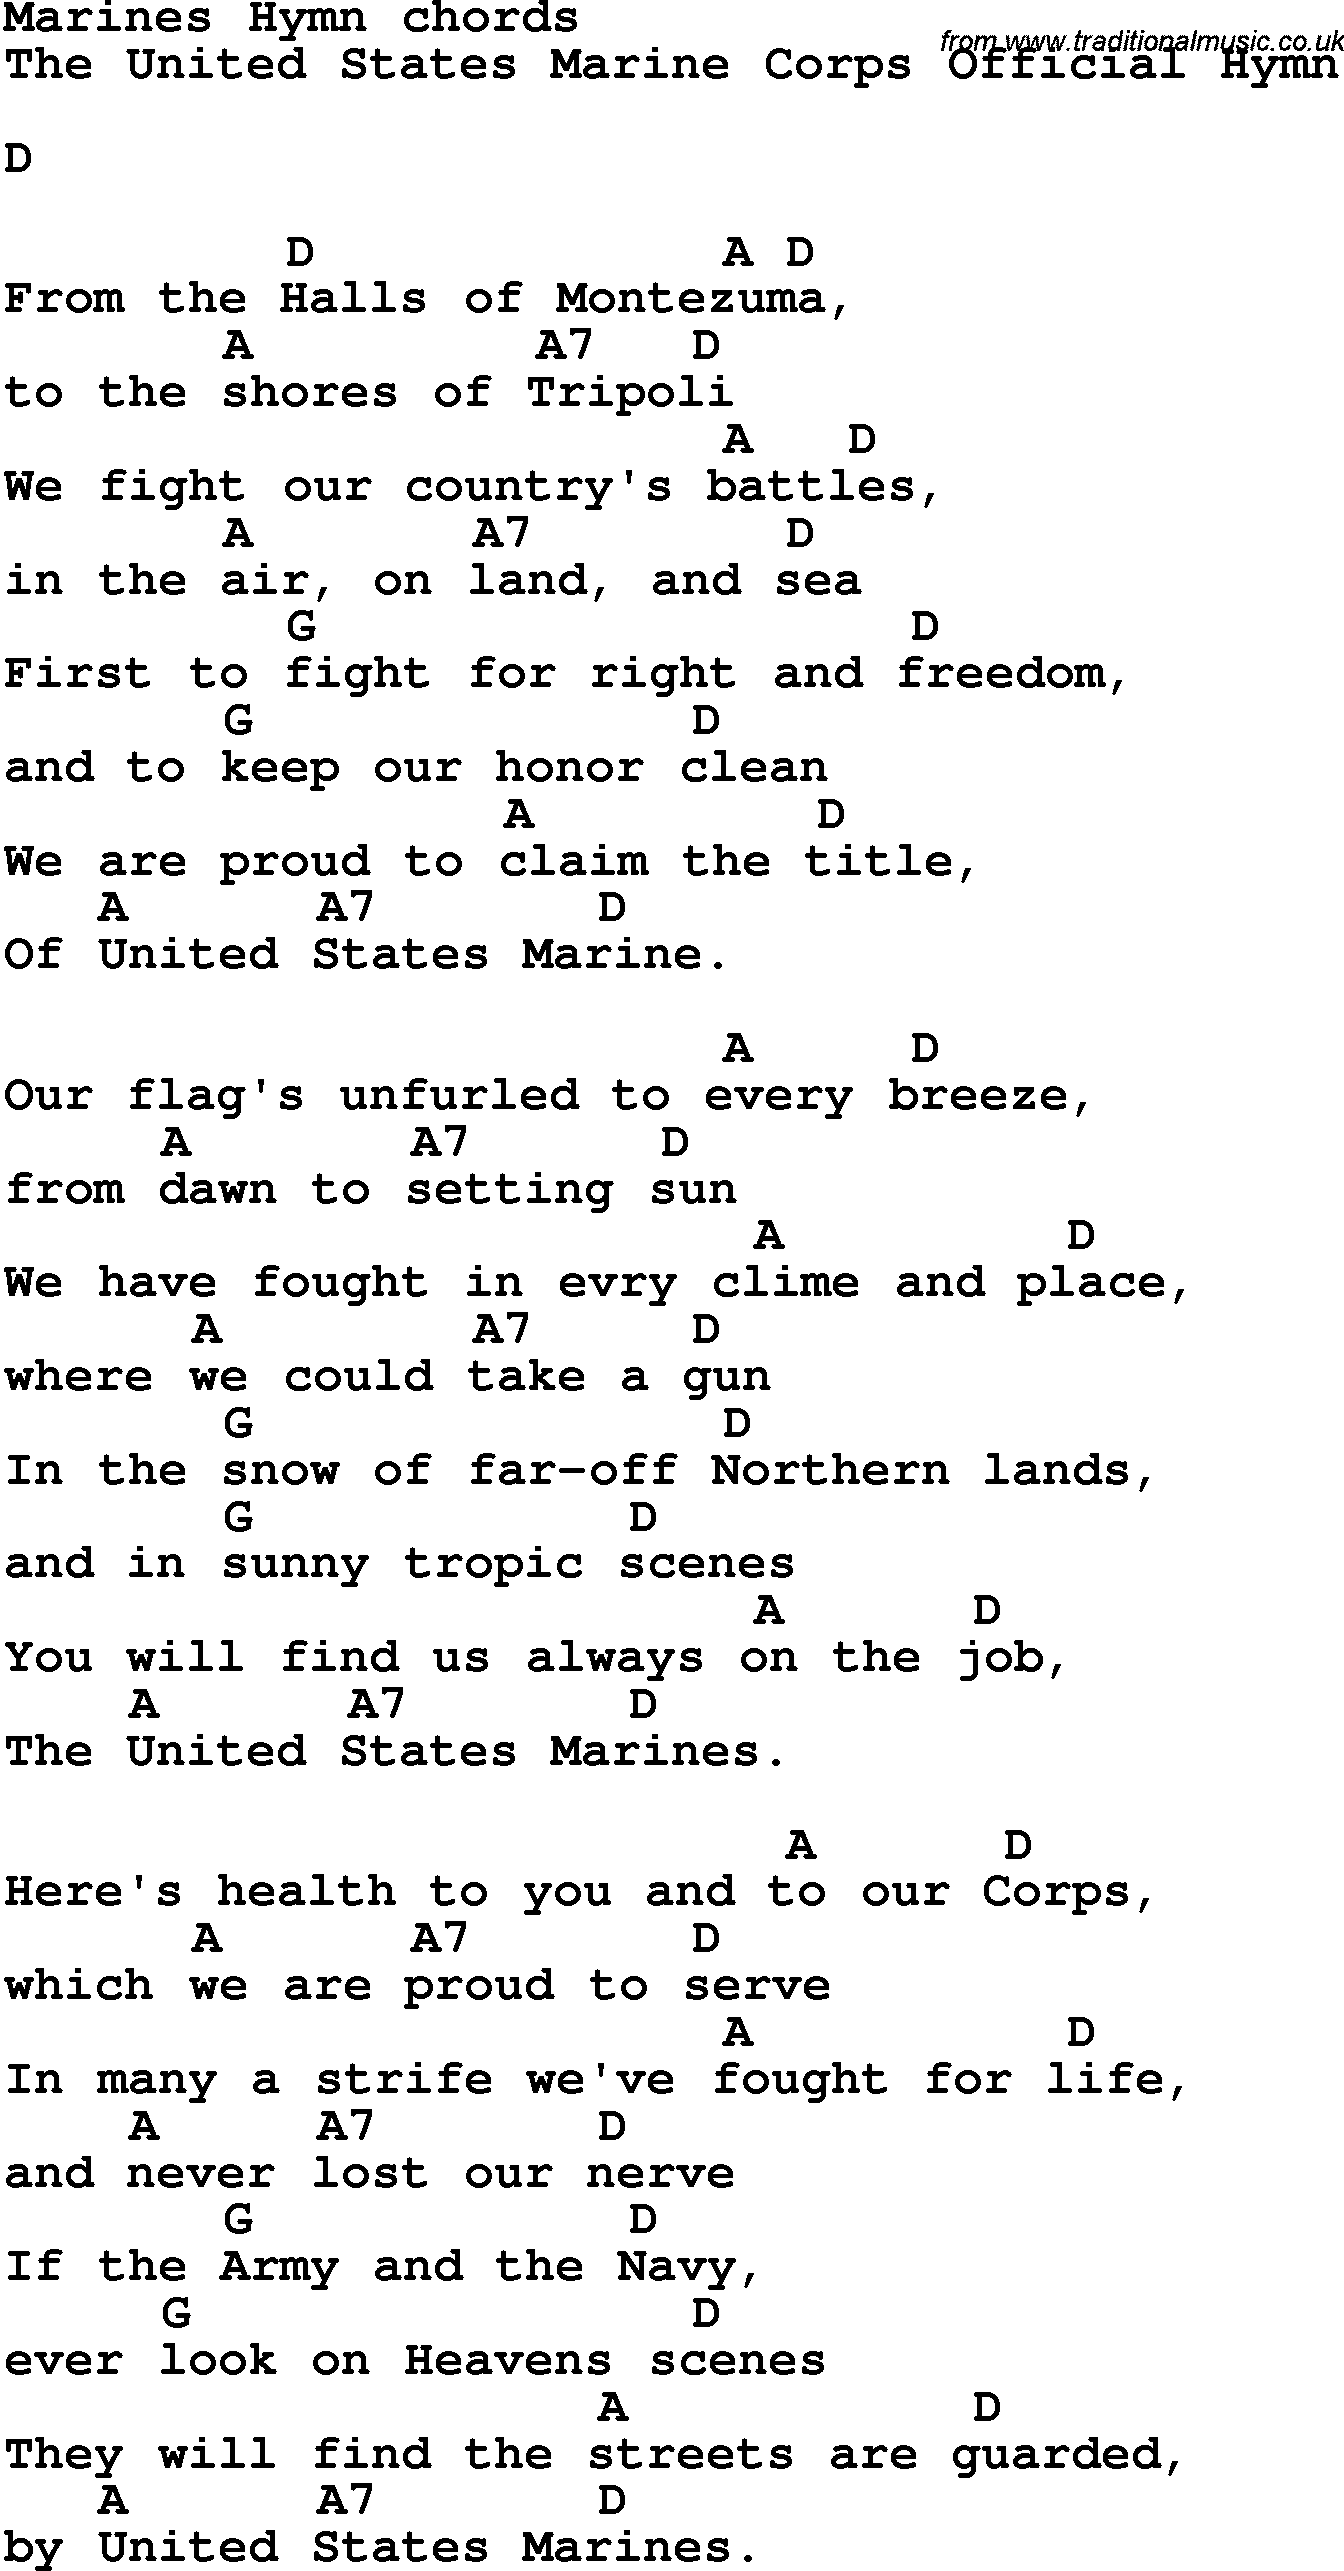 Song Lyrics With Guitar Chords For Marines Hymn